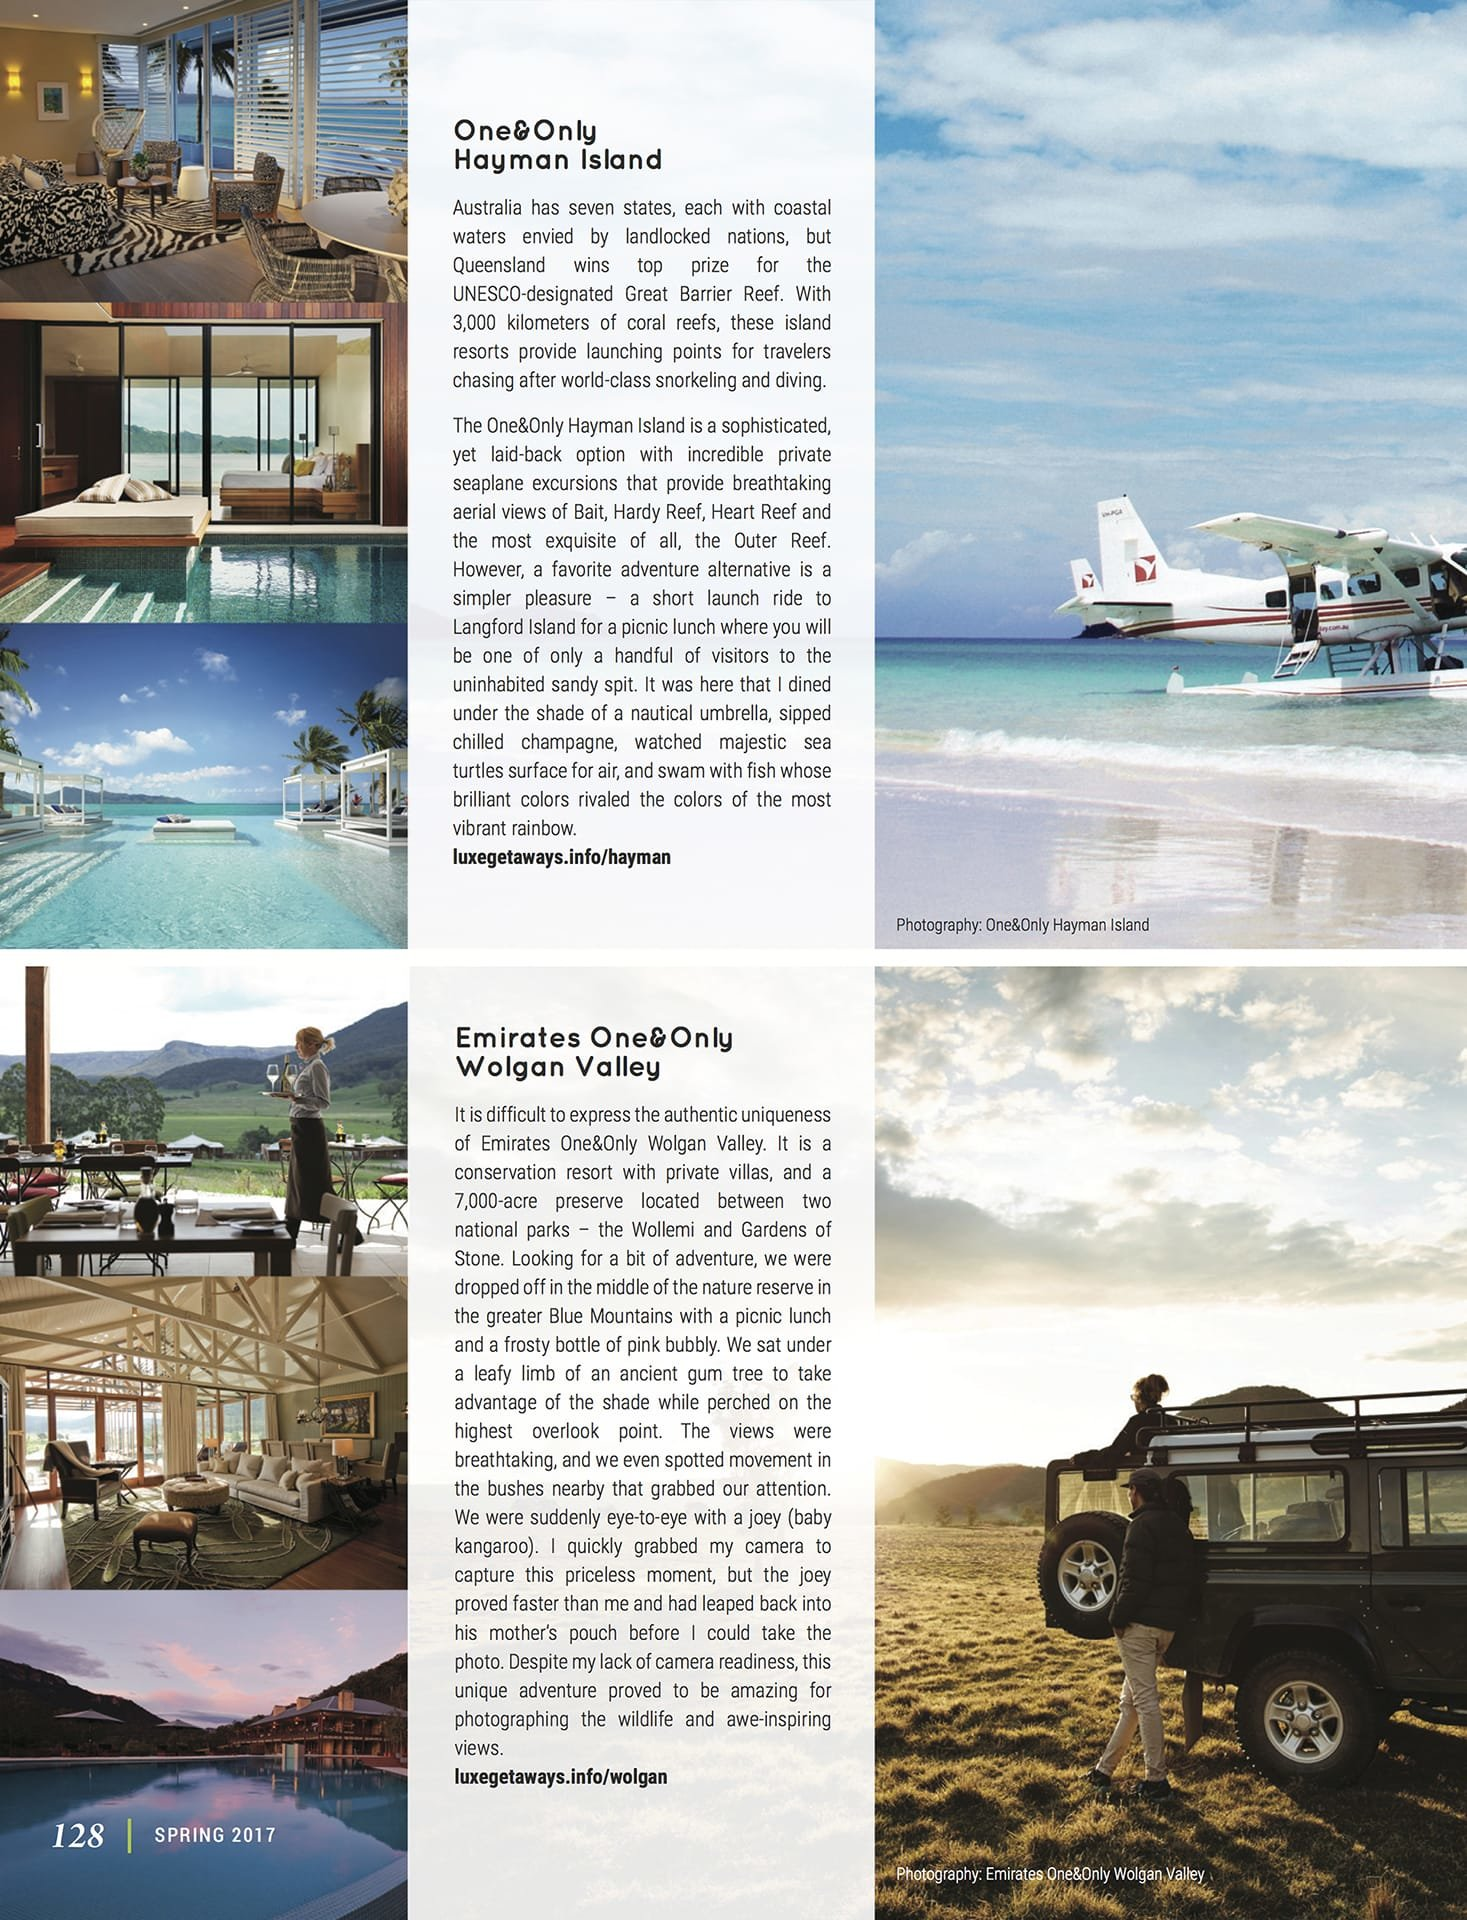 LuxeGetaways - Luxury Travel - Luxury Travel Magazine - Best of Australia - One&Only - One and Only Resorts - Priscilla Pilon